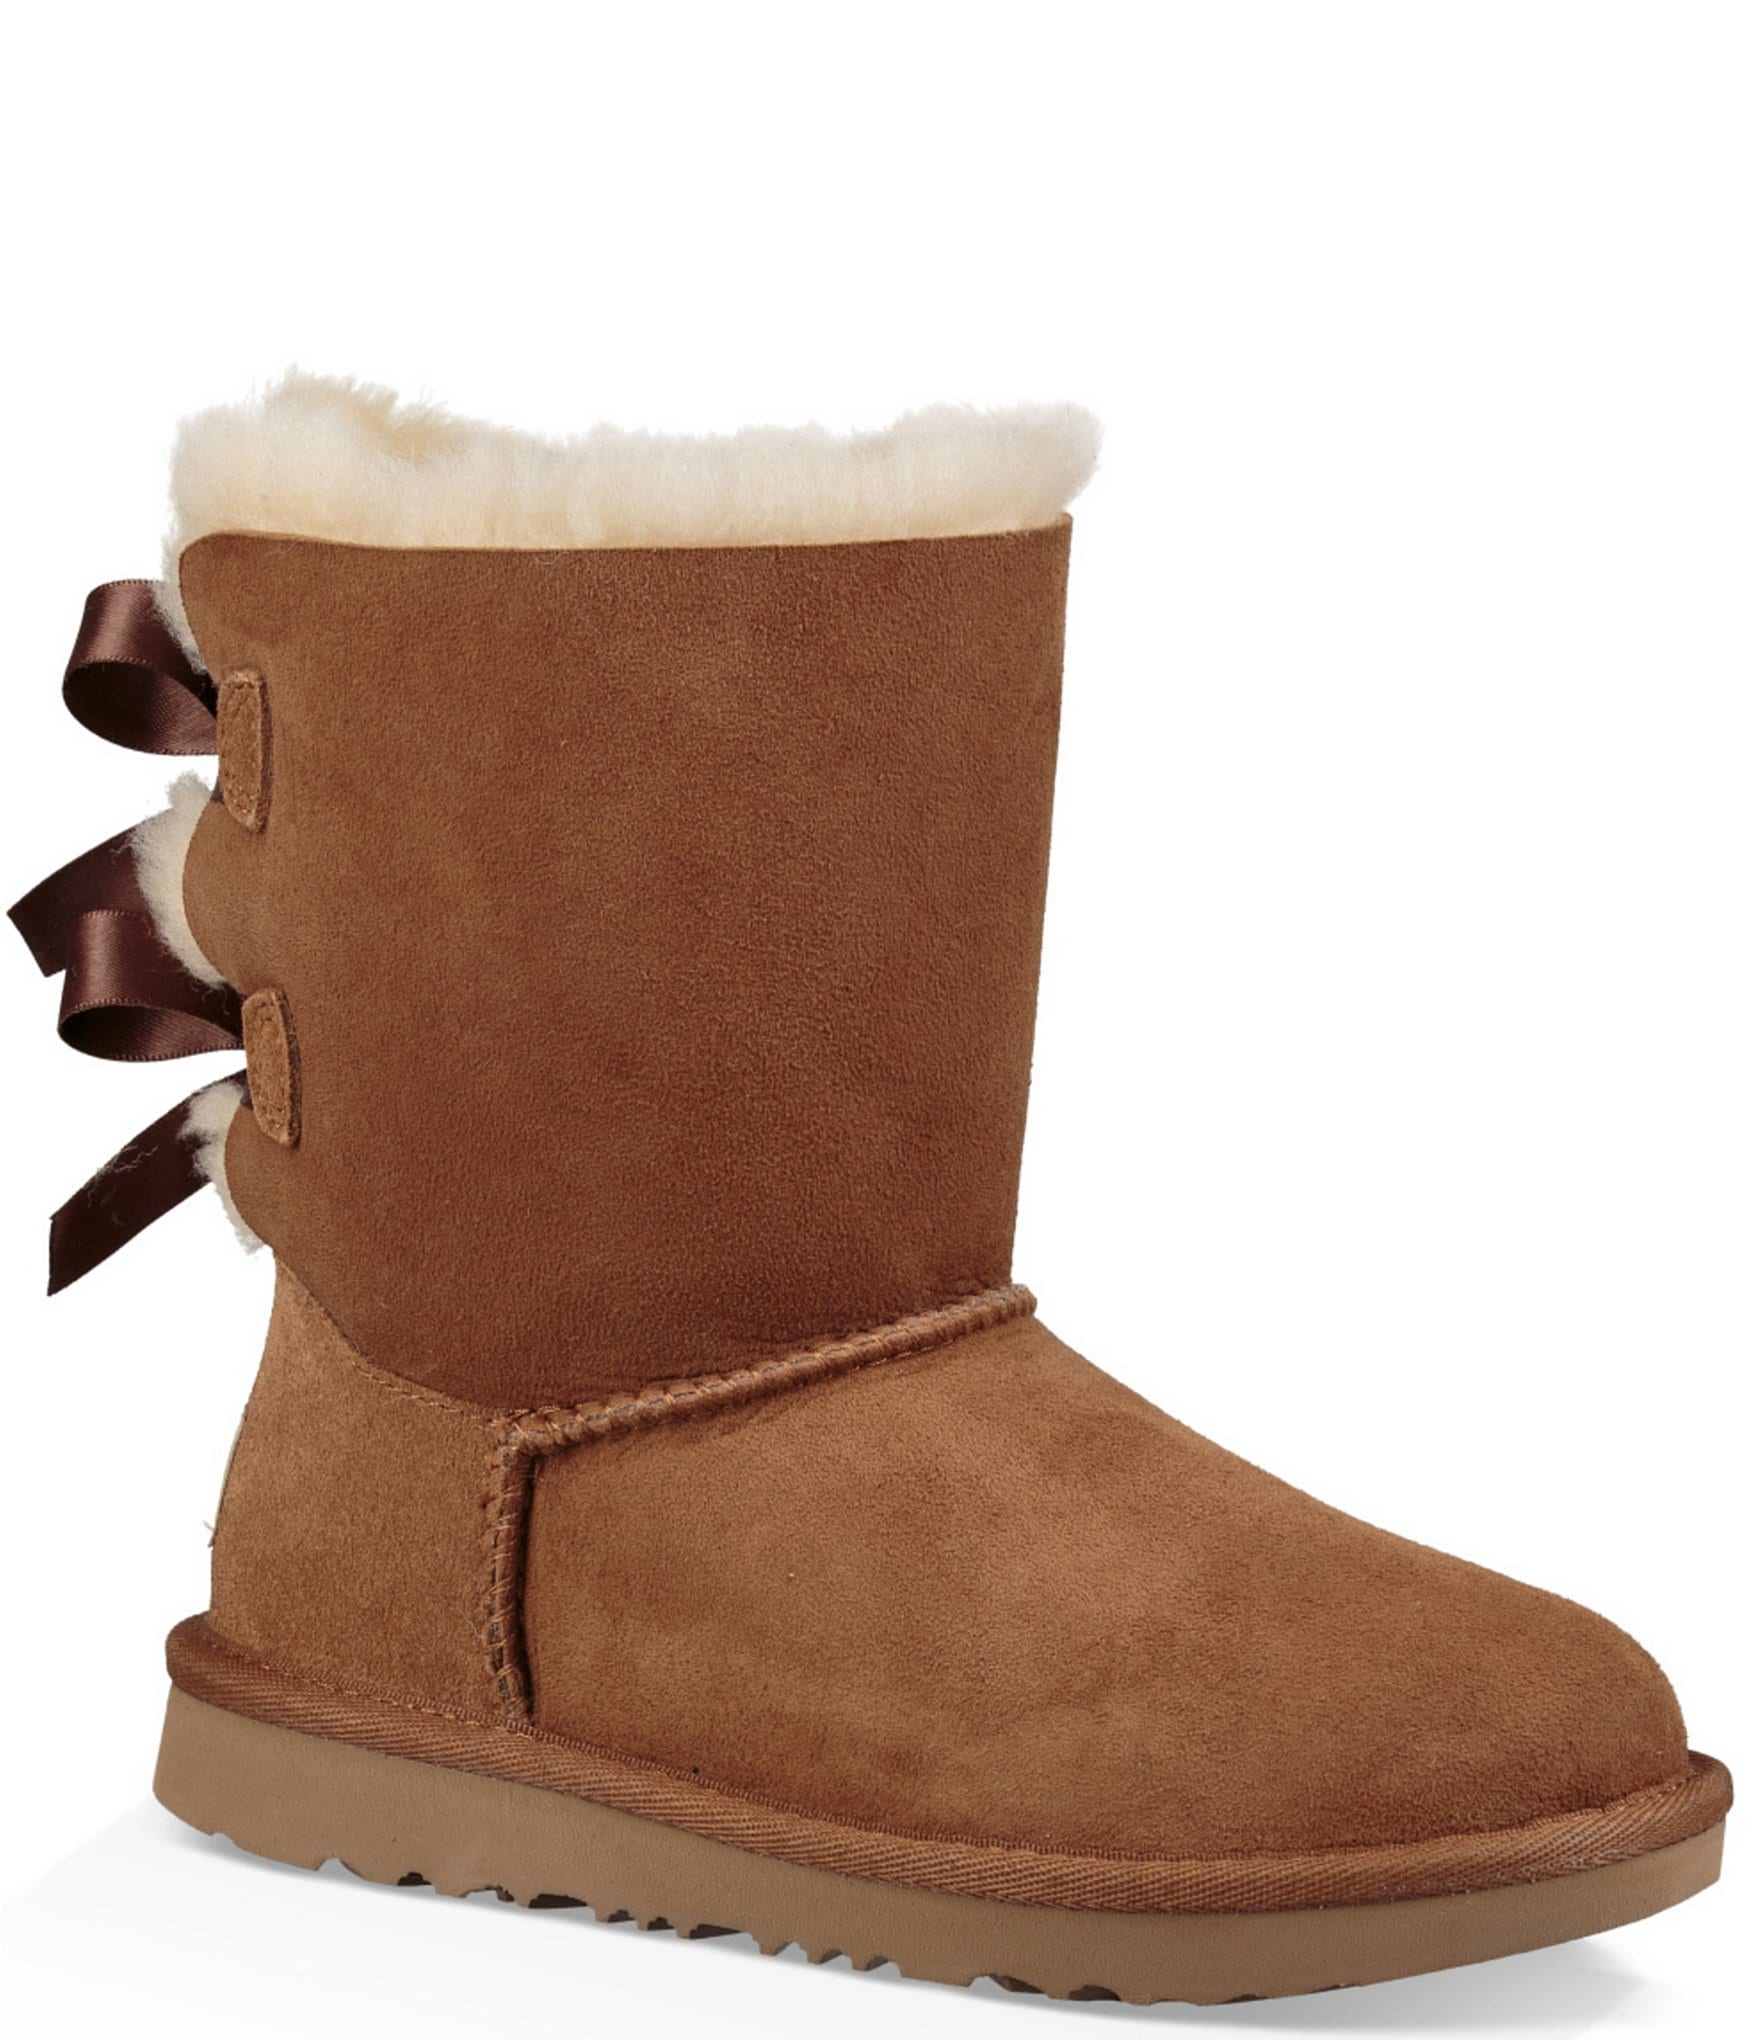 calvin klein shoes australian boots like uggs for toddlers